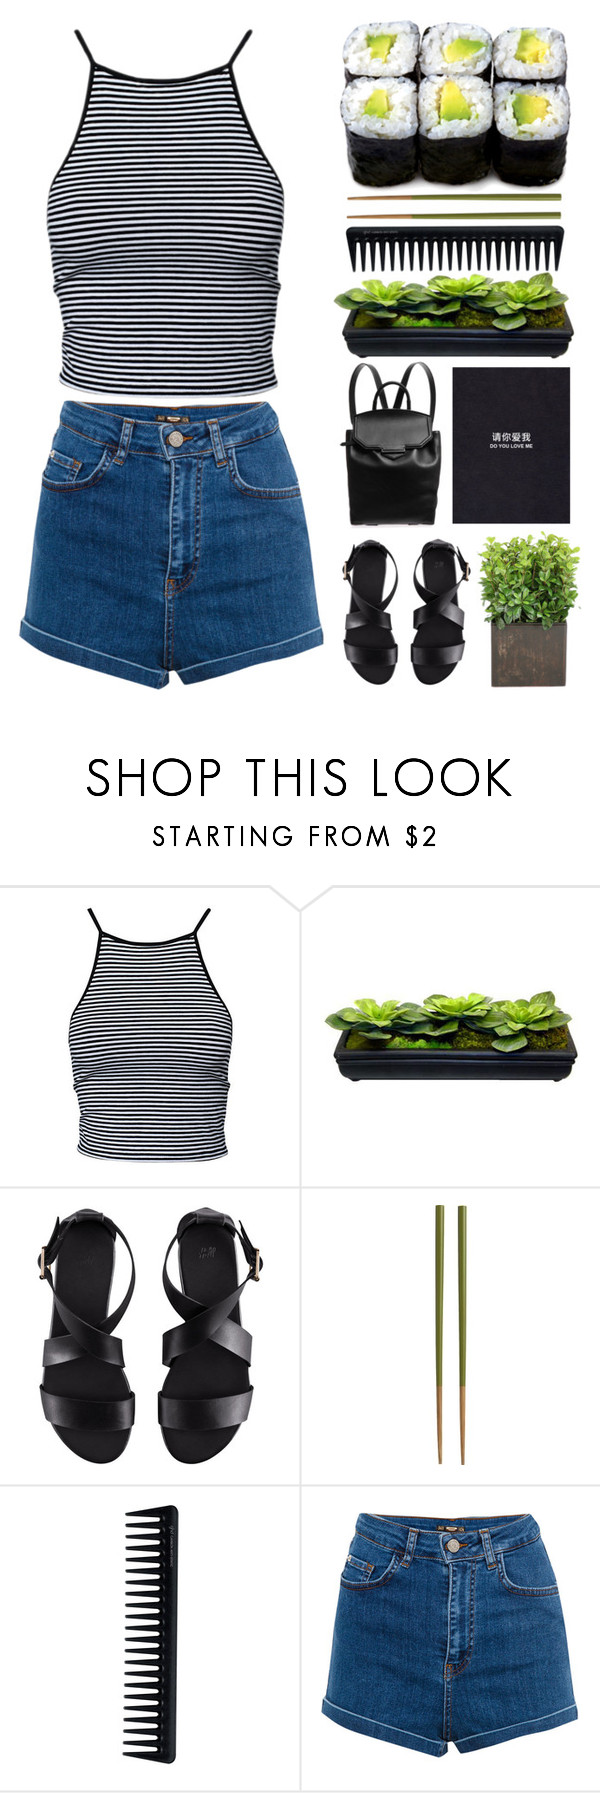 """""""#30"""" by iamaunicornx3 ❤ liked on Polyvore featuring Estradeur, H&M, Crate and Barrel, GHD, Pull&Bear and Alexander Wang"""